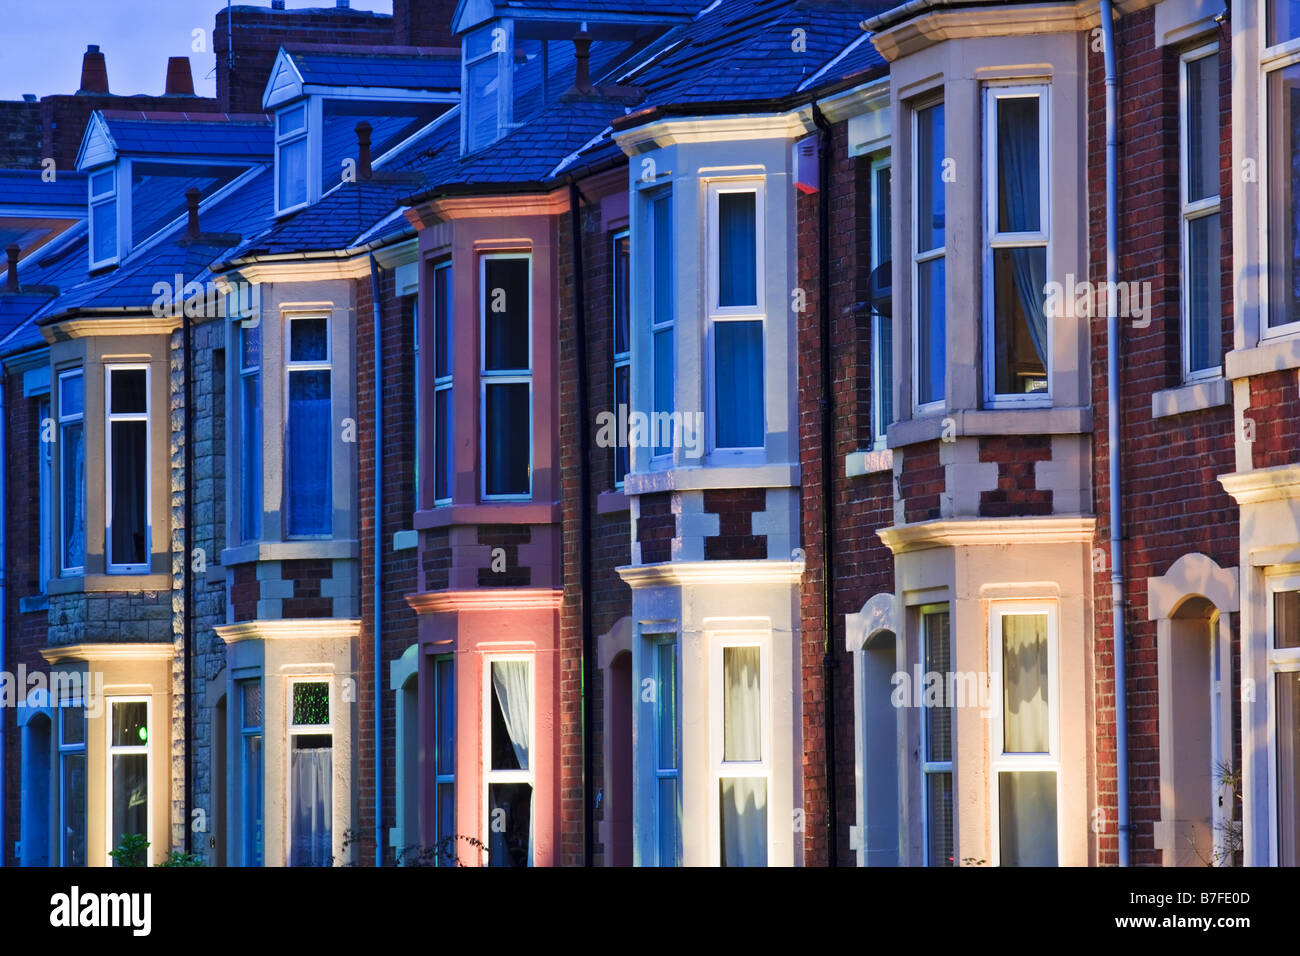 Terraced housing in a 1930s style on Belgrave Crescent opposite Ridley Park in Blyth Stock Photo